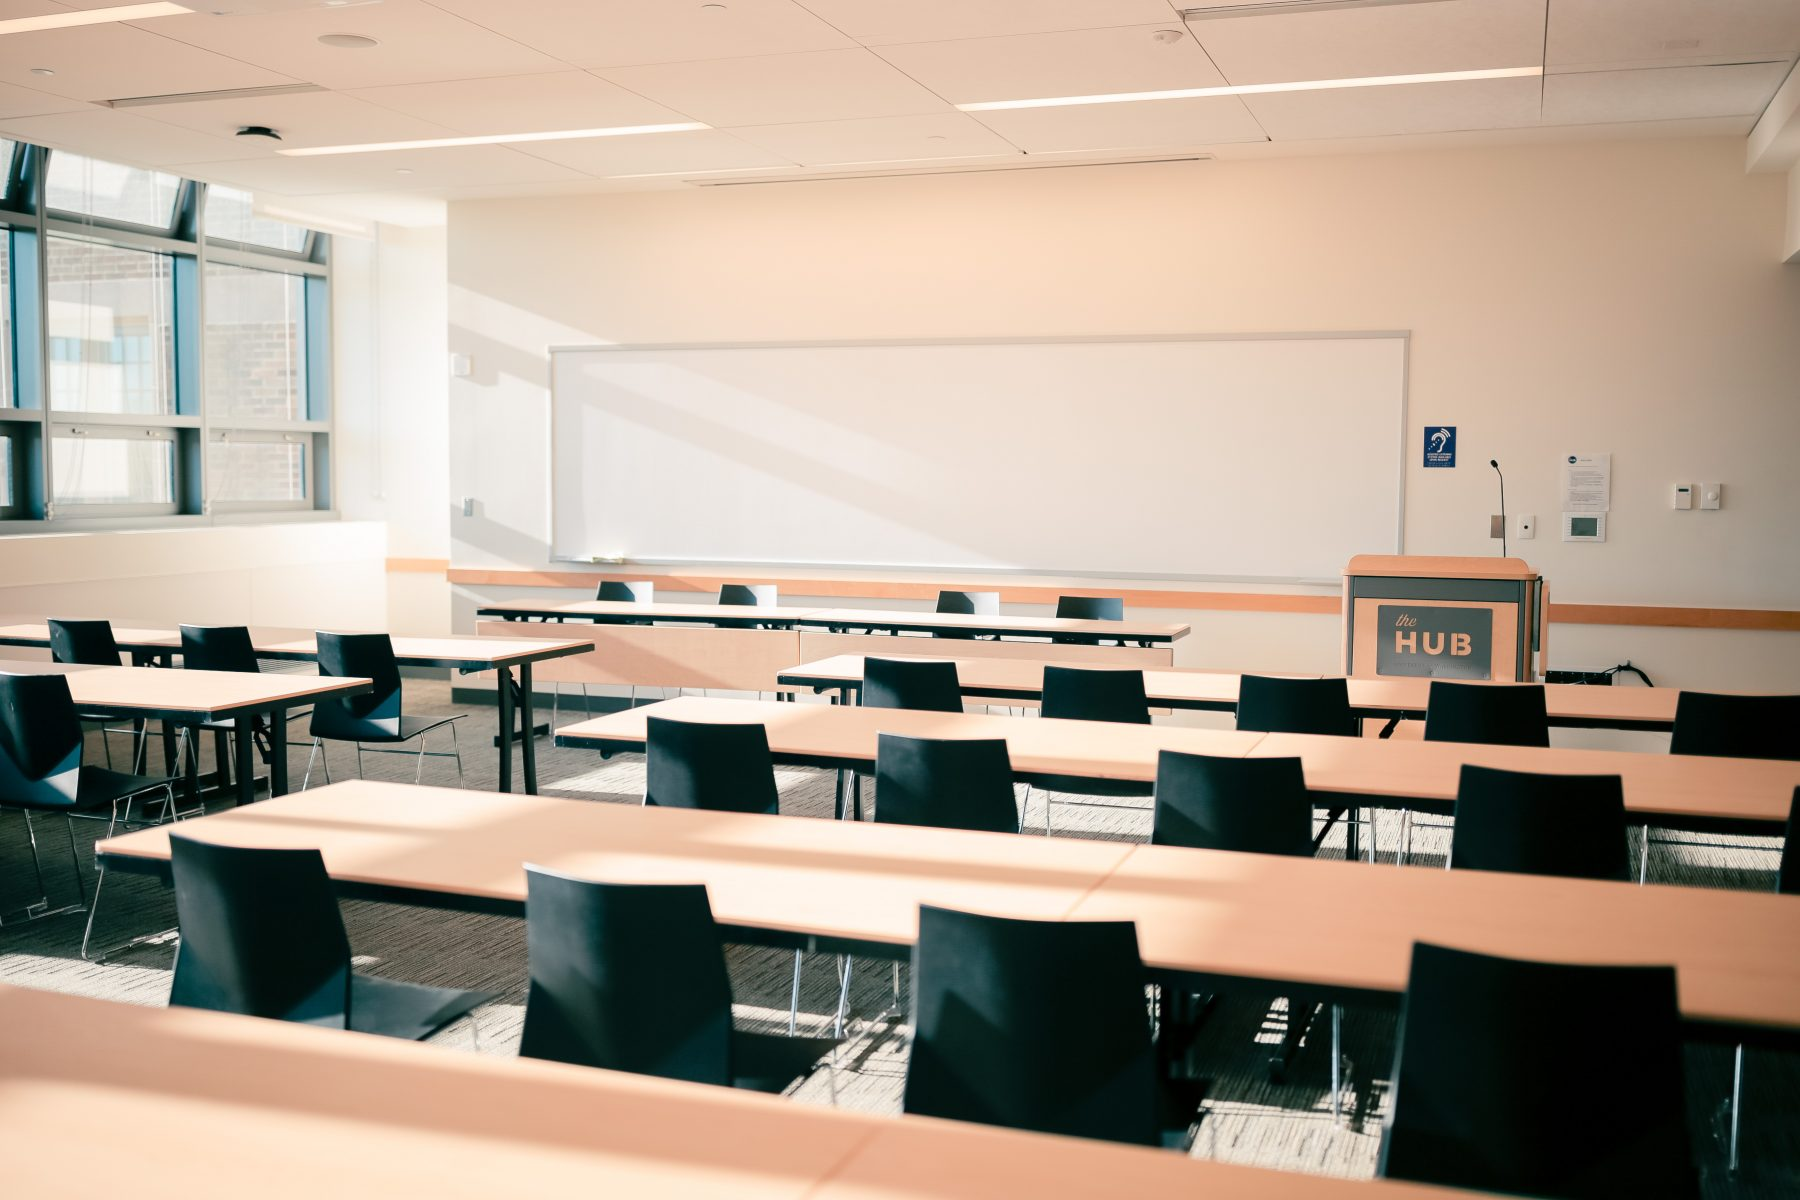 Classroom set, 2 - 6' tables can seat 5 people